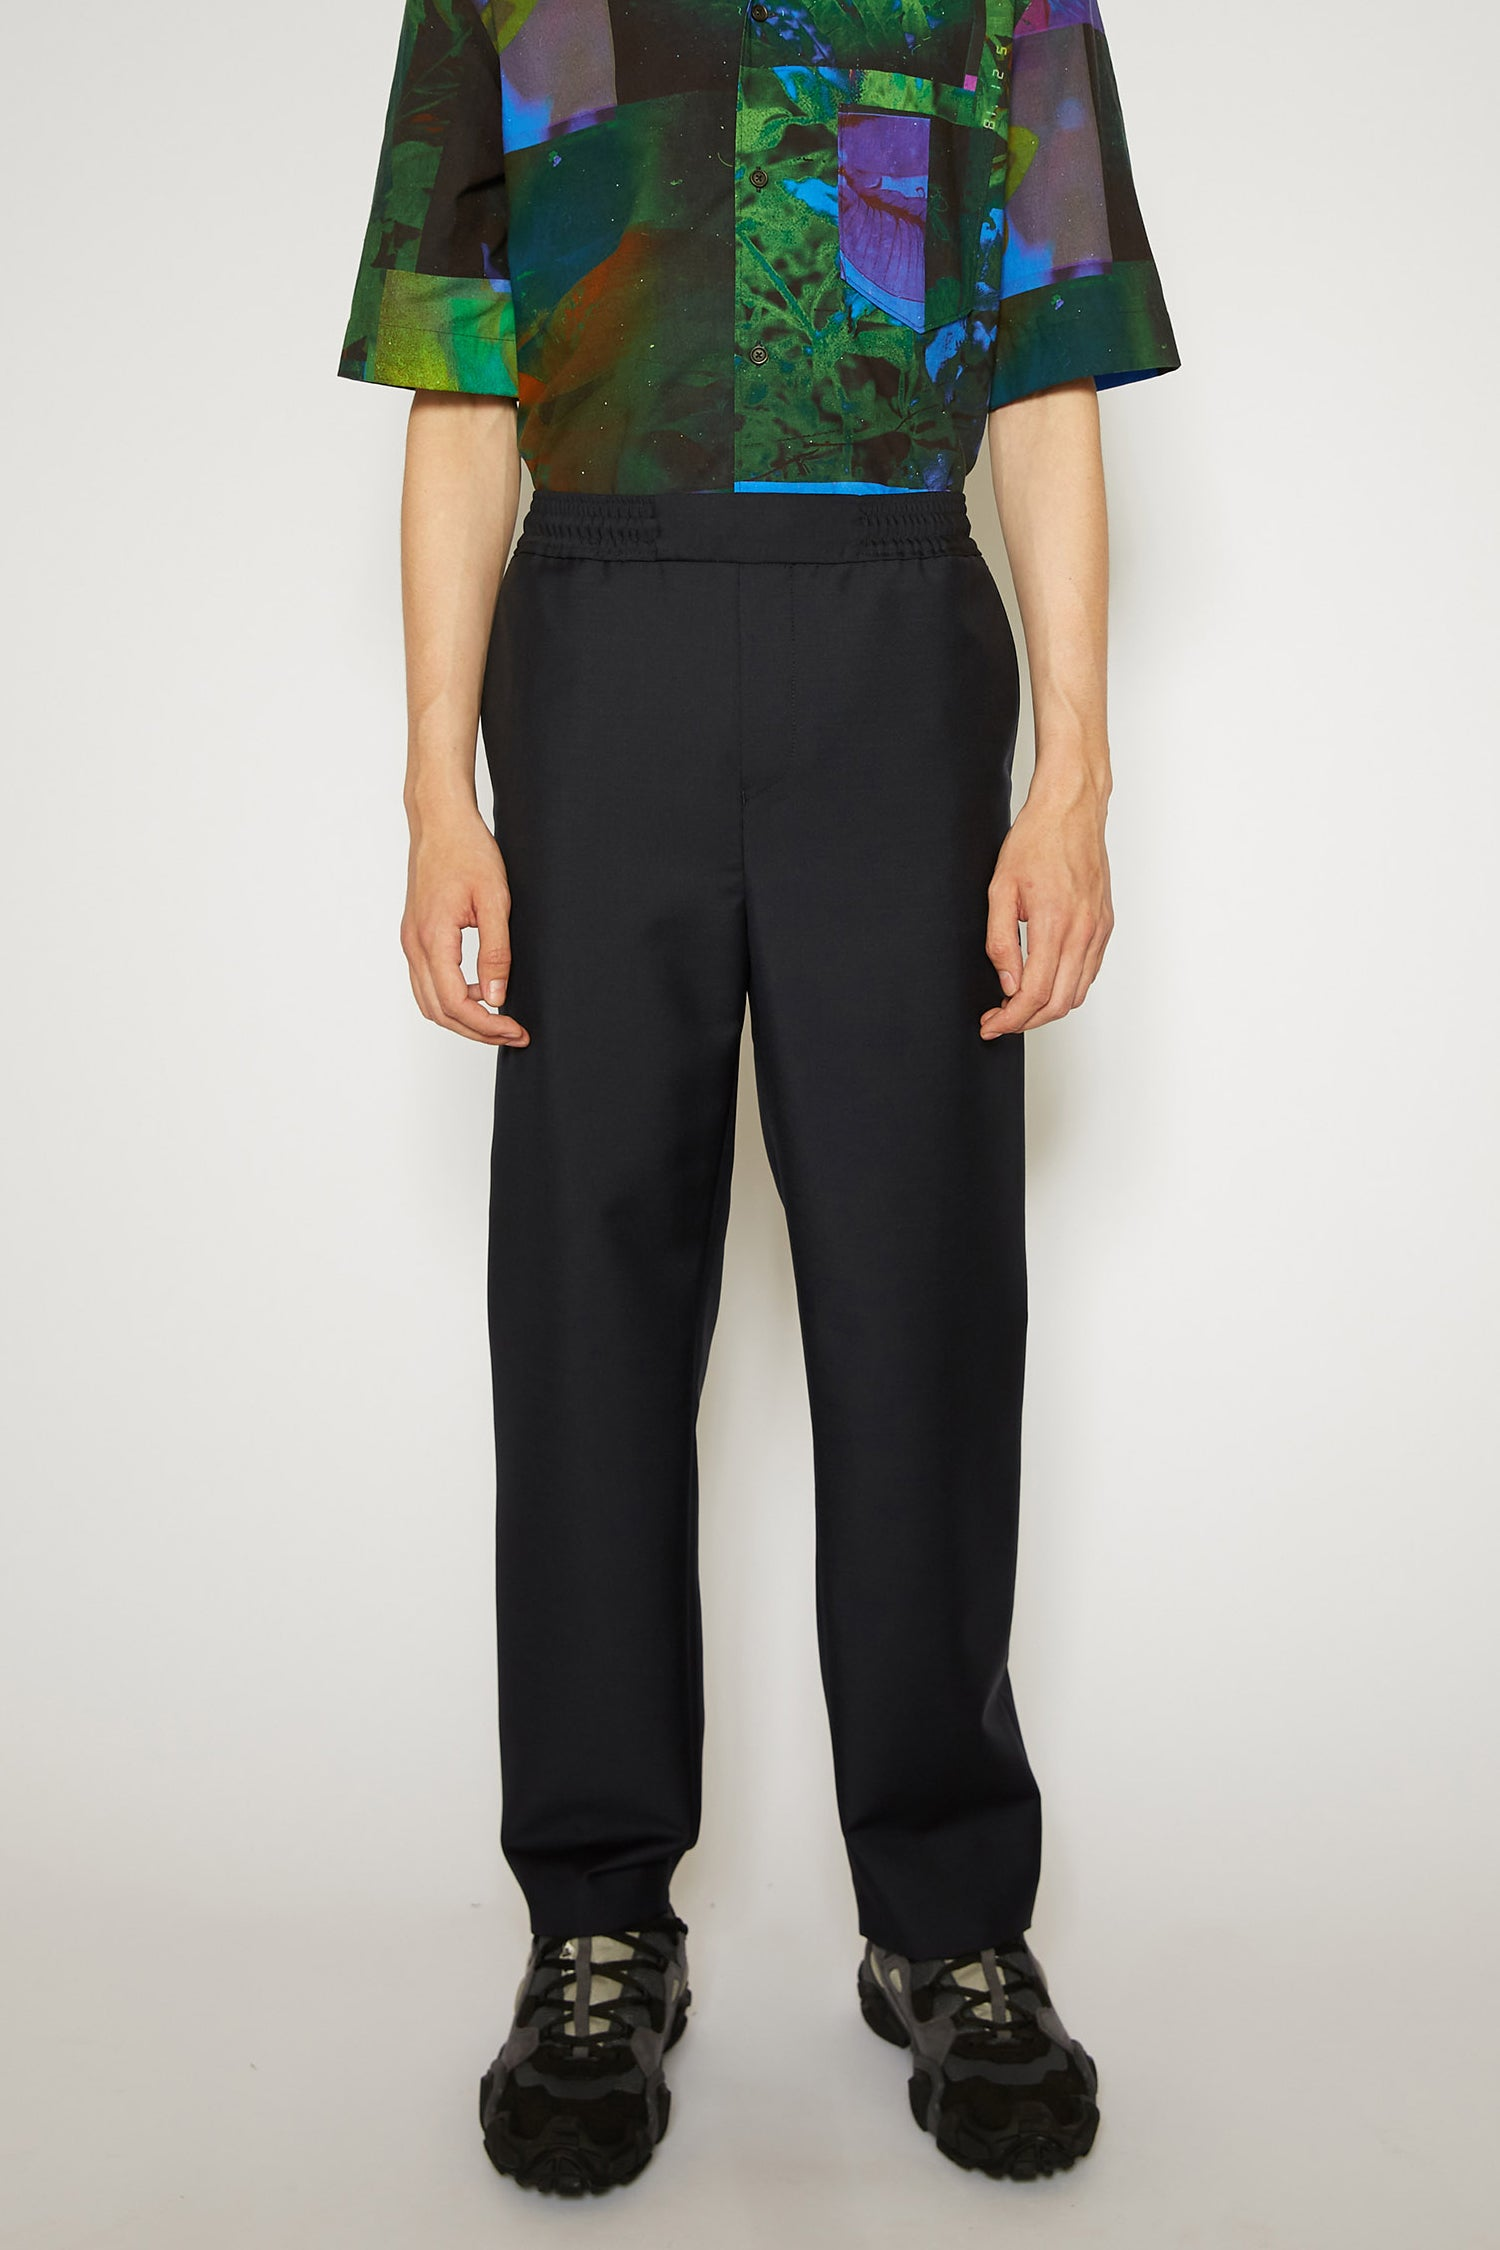 PISMO TROUSERS